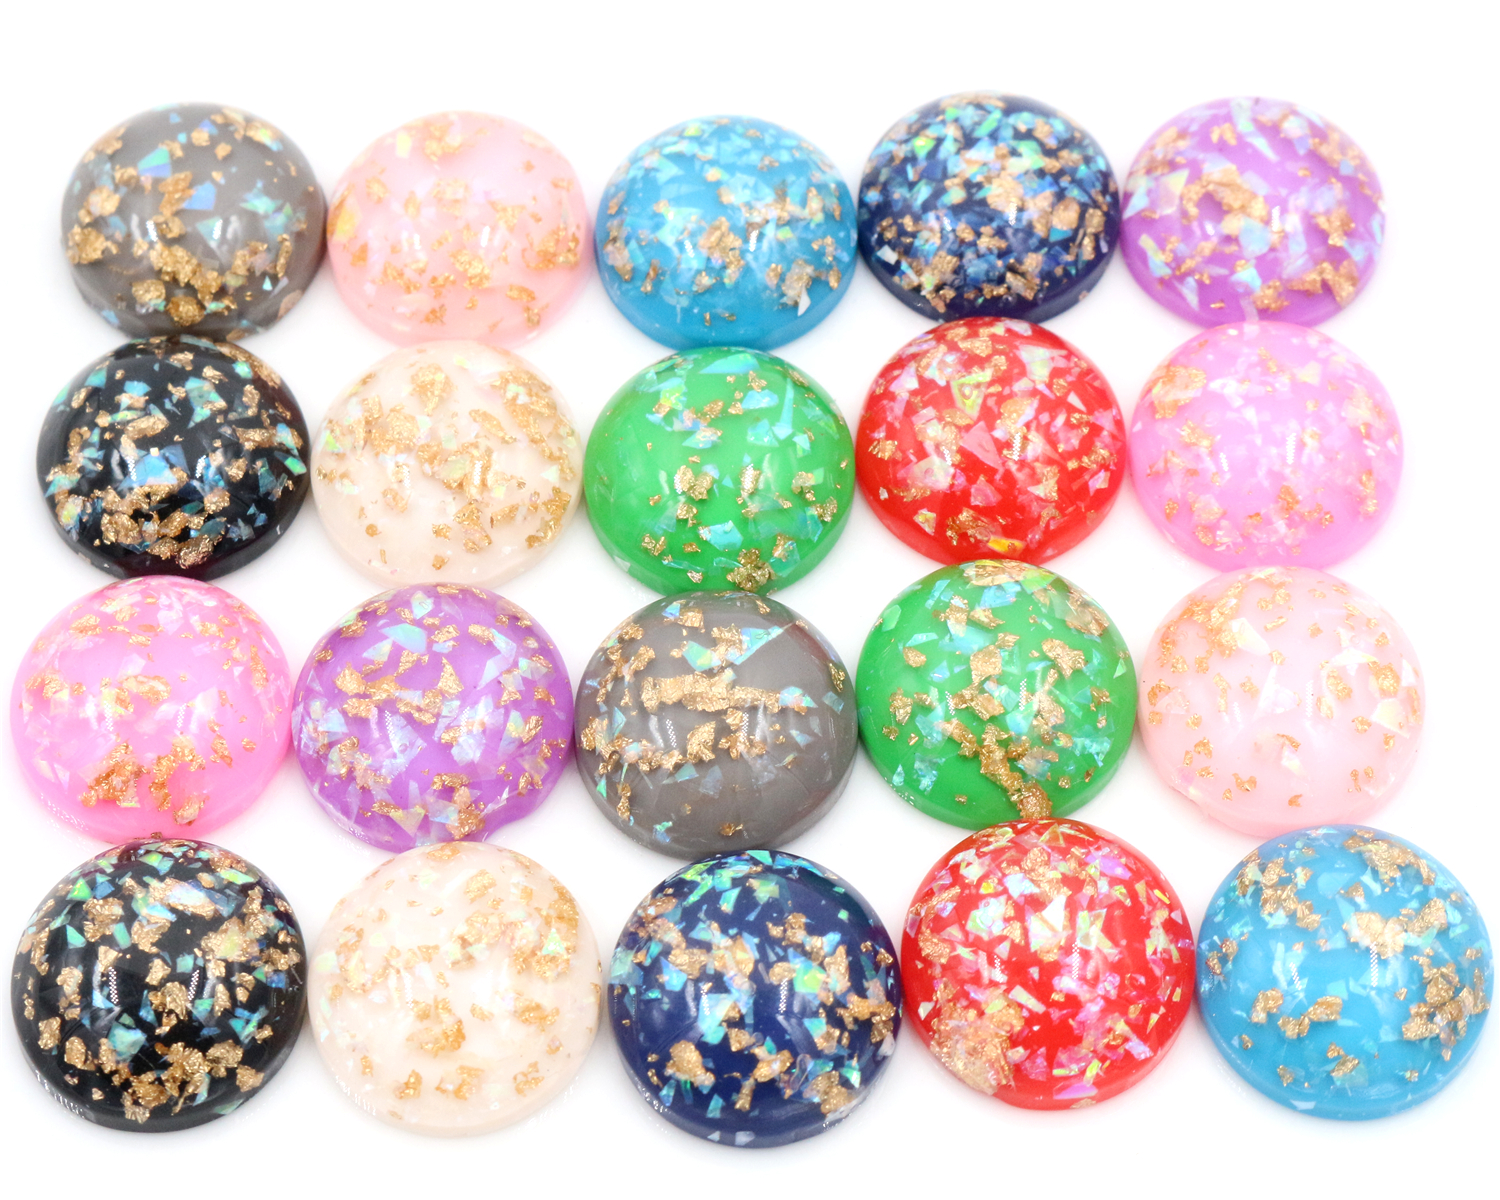 20mm 10pcs/Lot New Fashion Mix Color Built-in metal foil Flat back Resin Cabochons Cameo 8mm 10mm 12mm 14mm 16mm 18mm 20mm 7 size style 20pcs lot black shell color flat back resin cabochons cameo